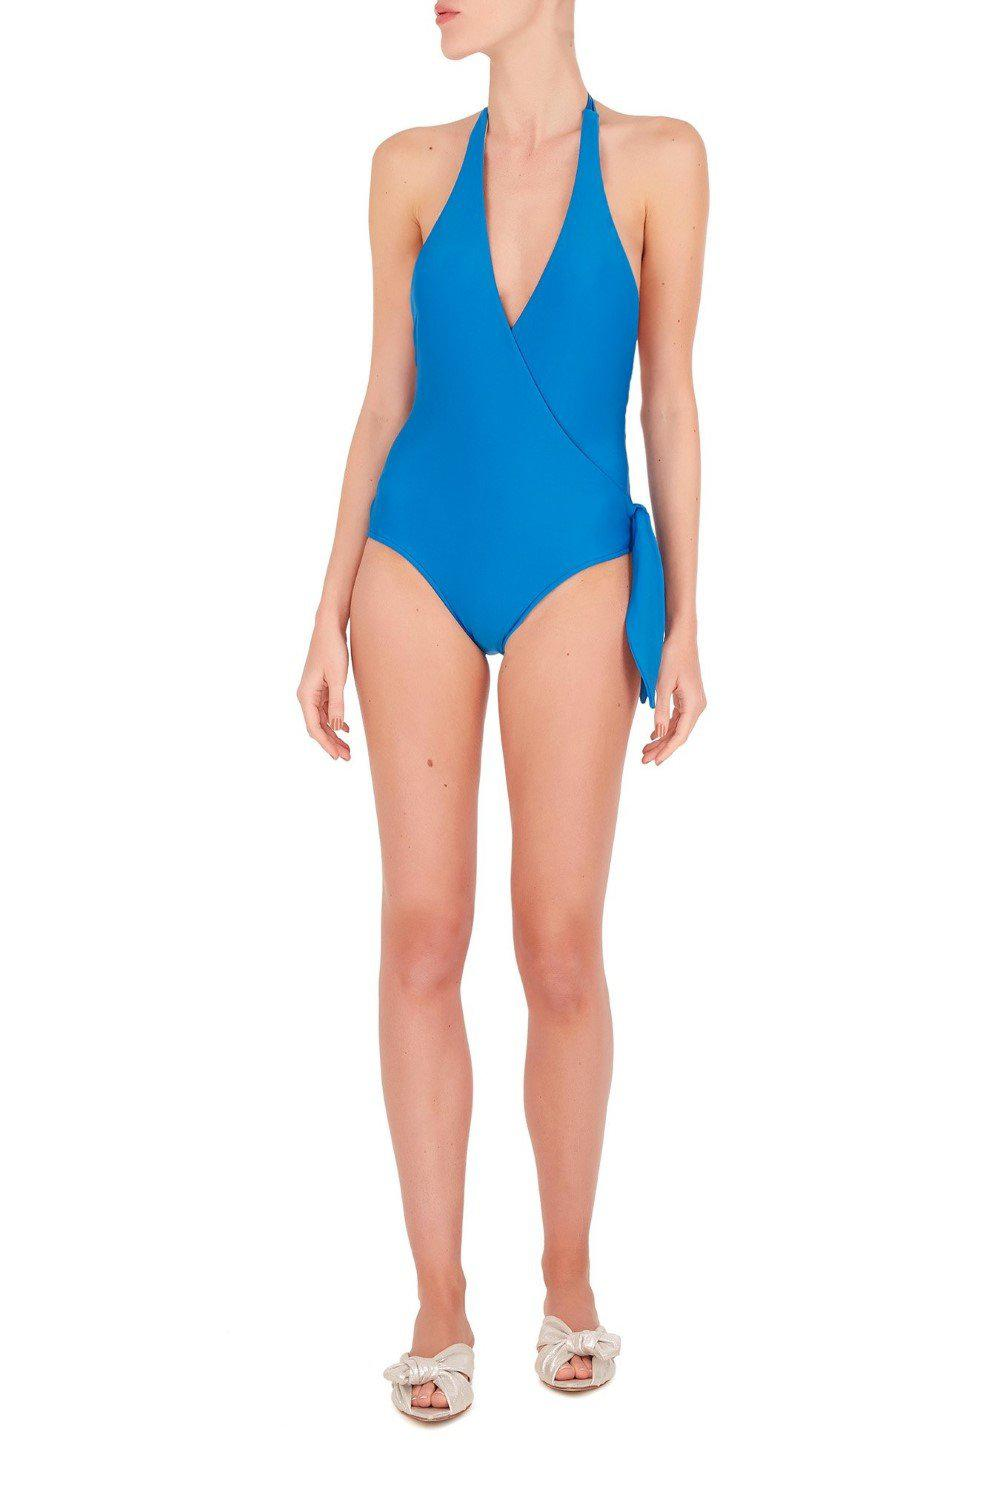 Conchiglie Cross-Front Halterneck Swimsuit with Knot